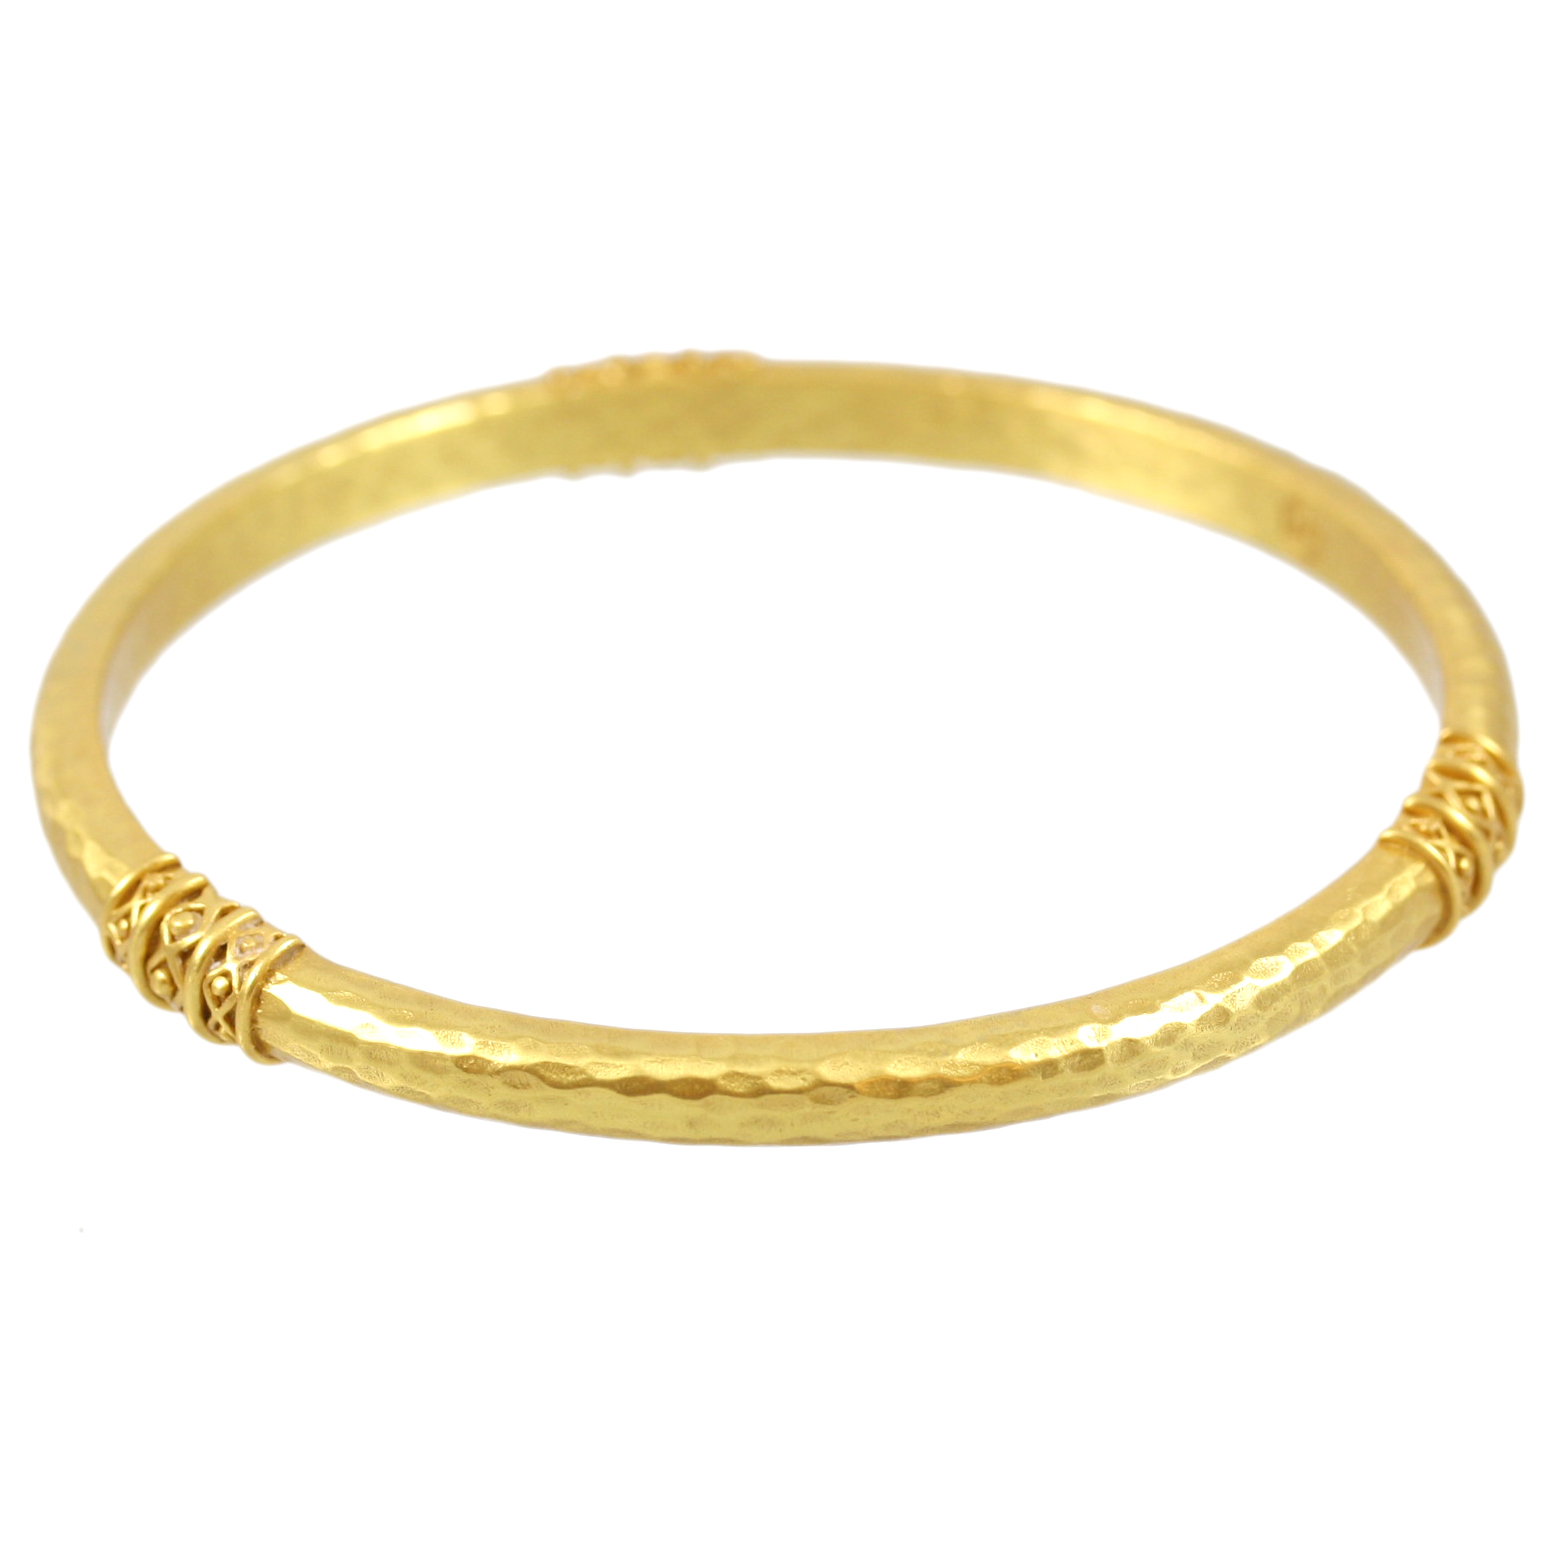 Julie Vos 24 Karat Gold Plated Catalina Bangle